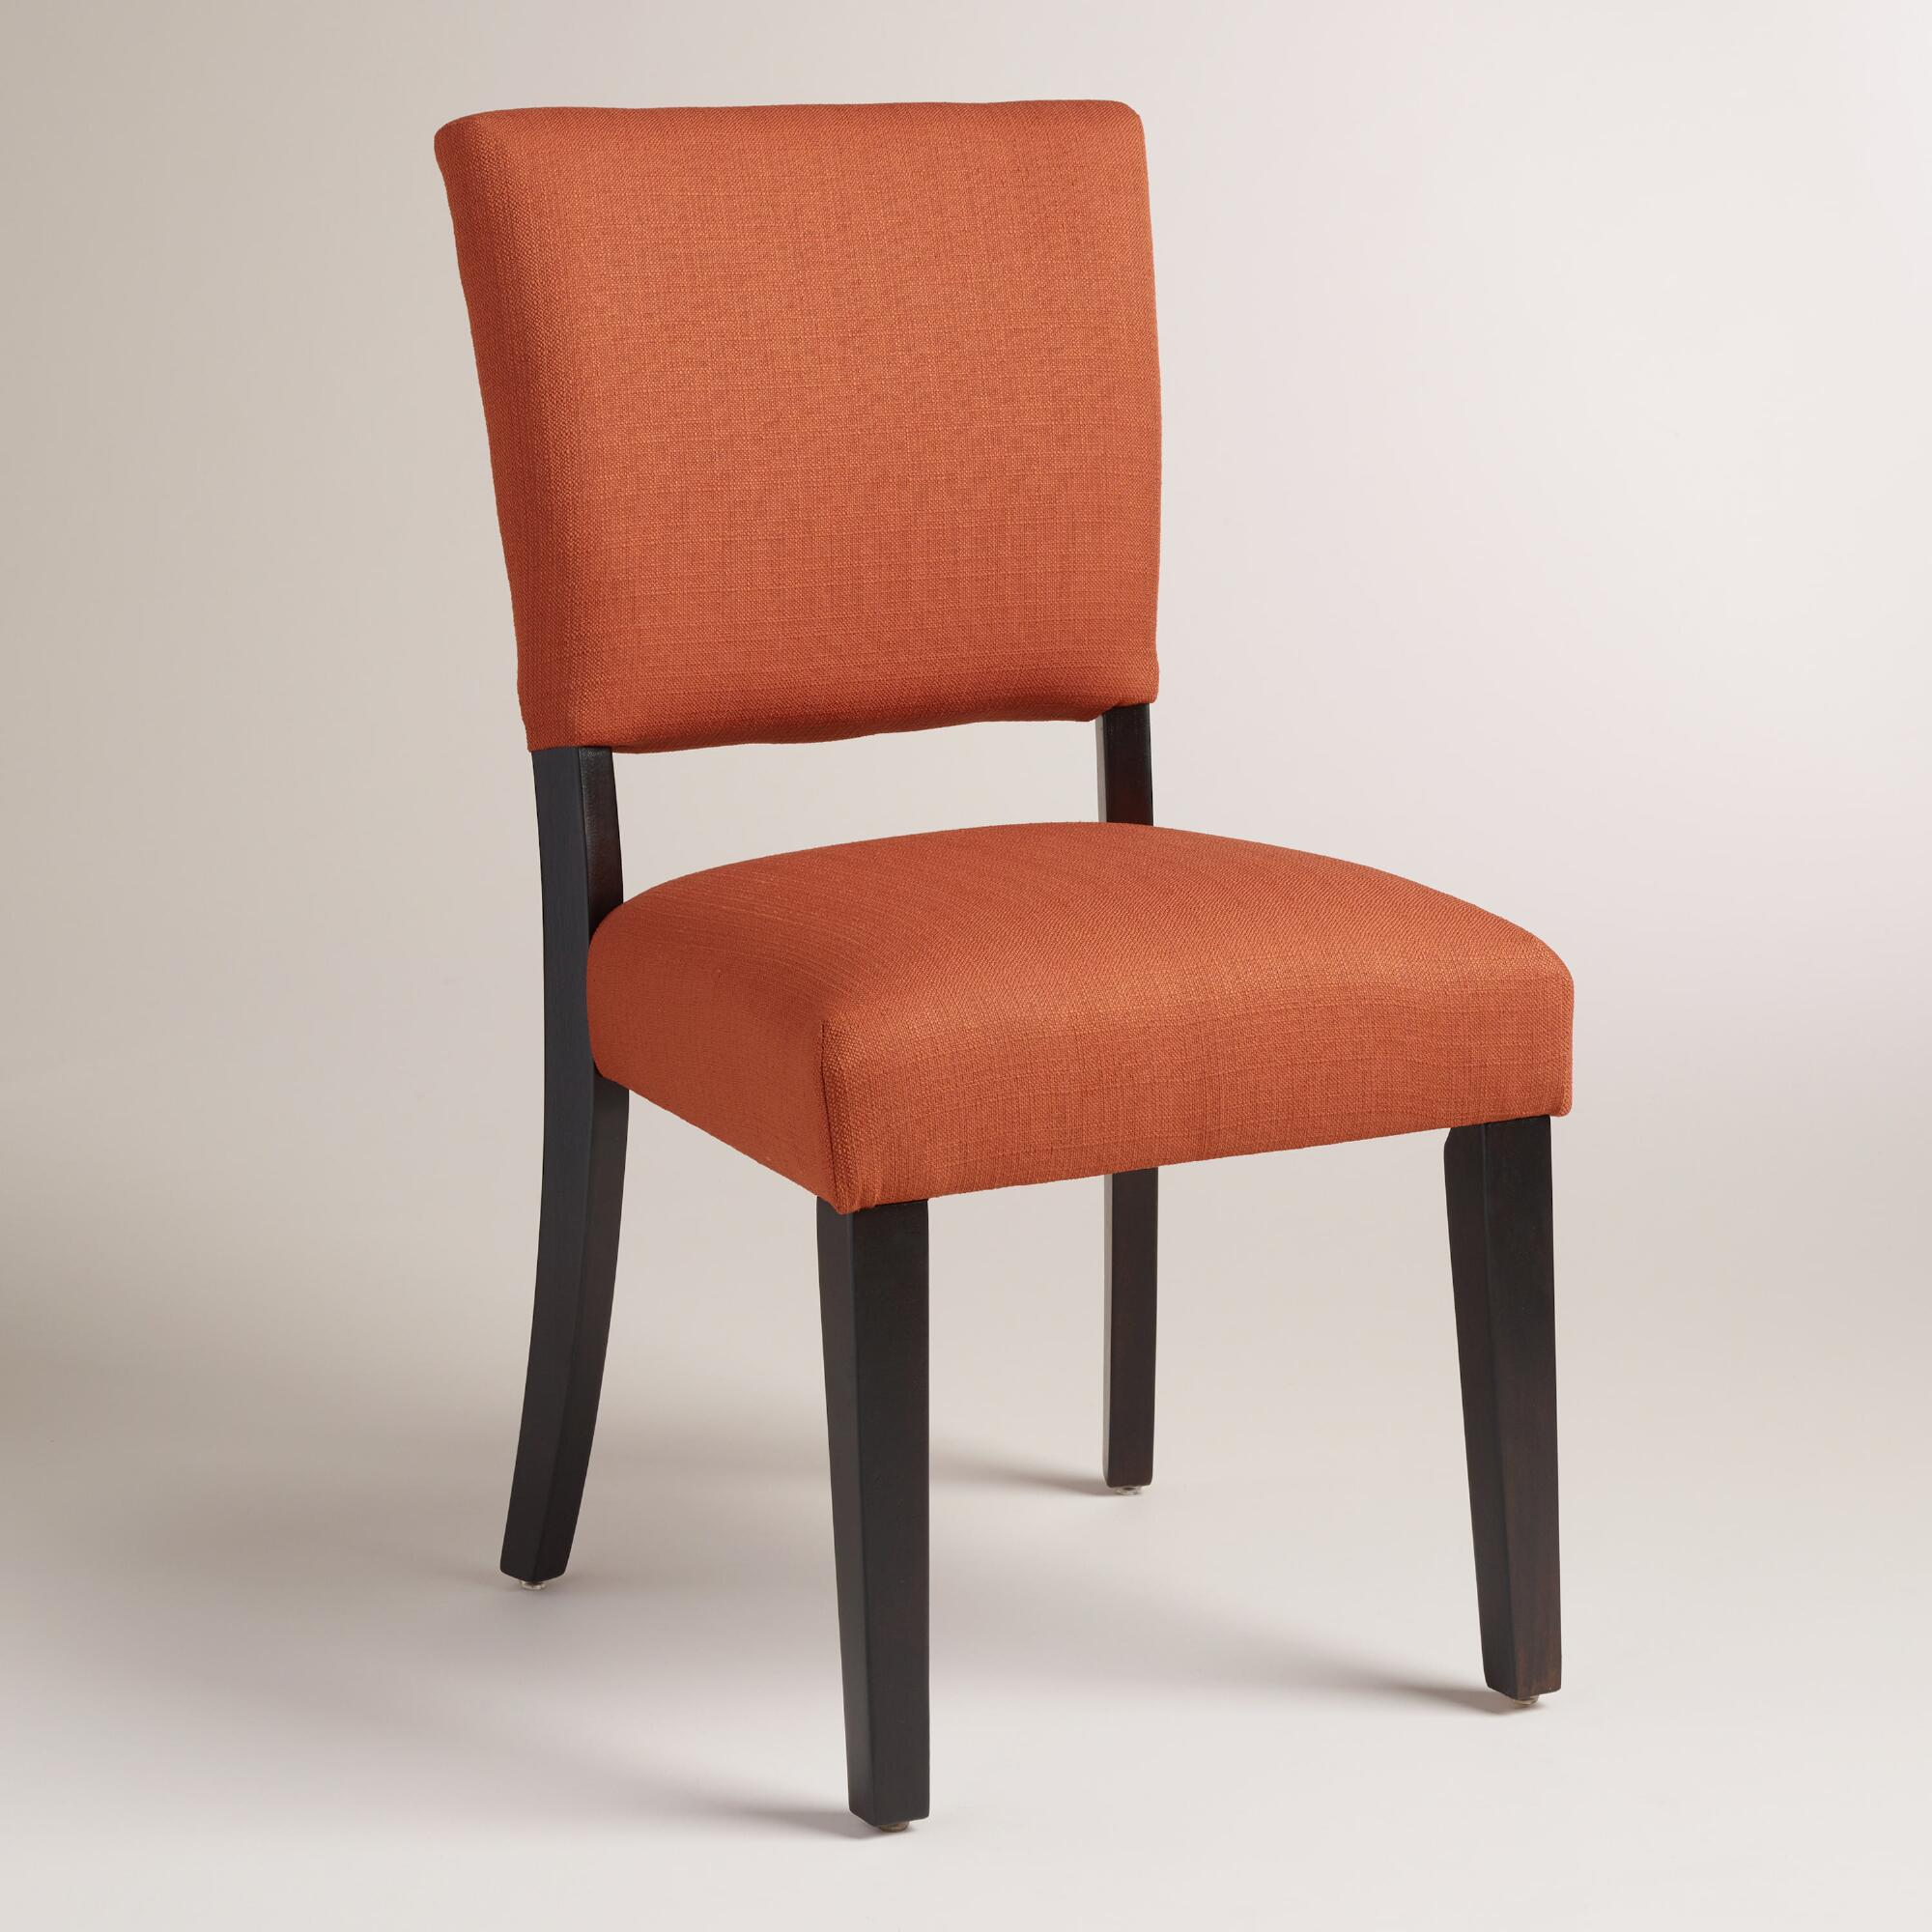 Orange Dining Chairs: Henna Orange Mady Dining Chairs, Set Of 2